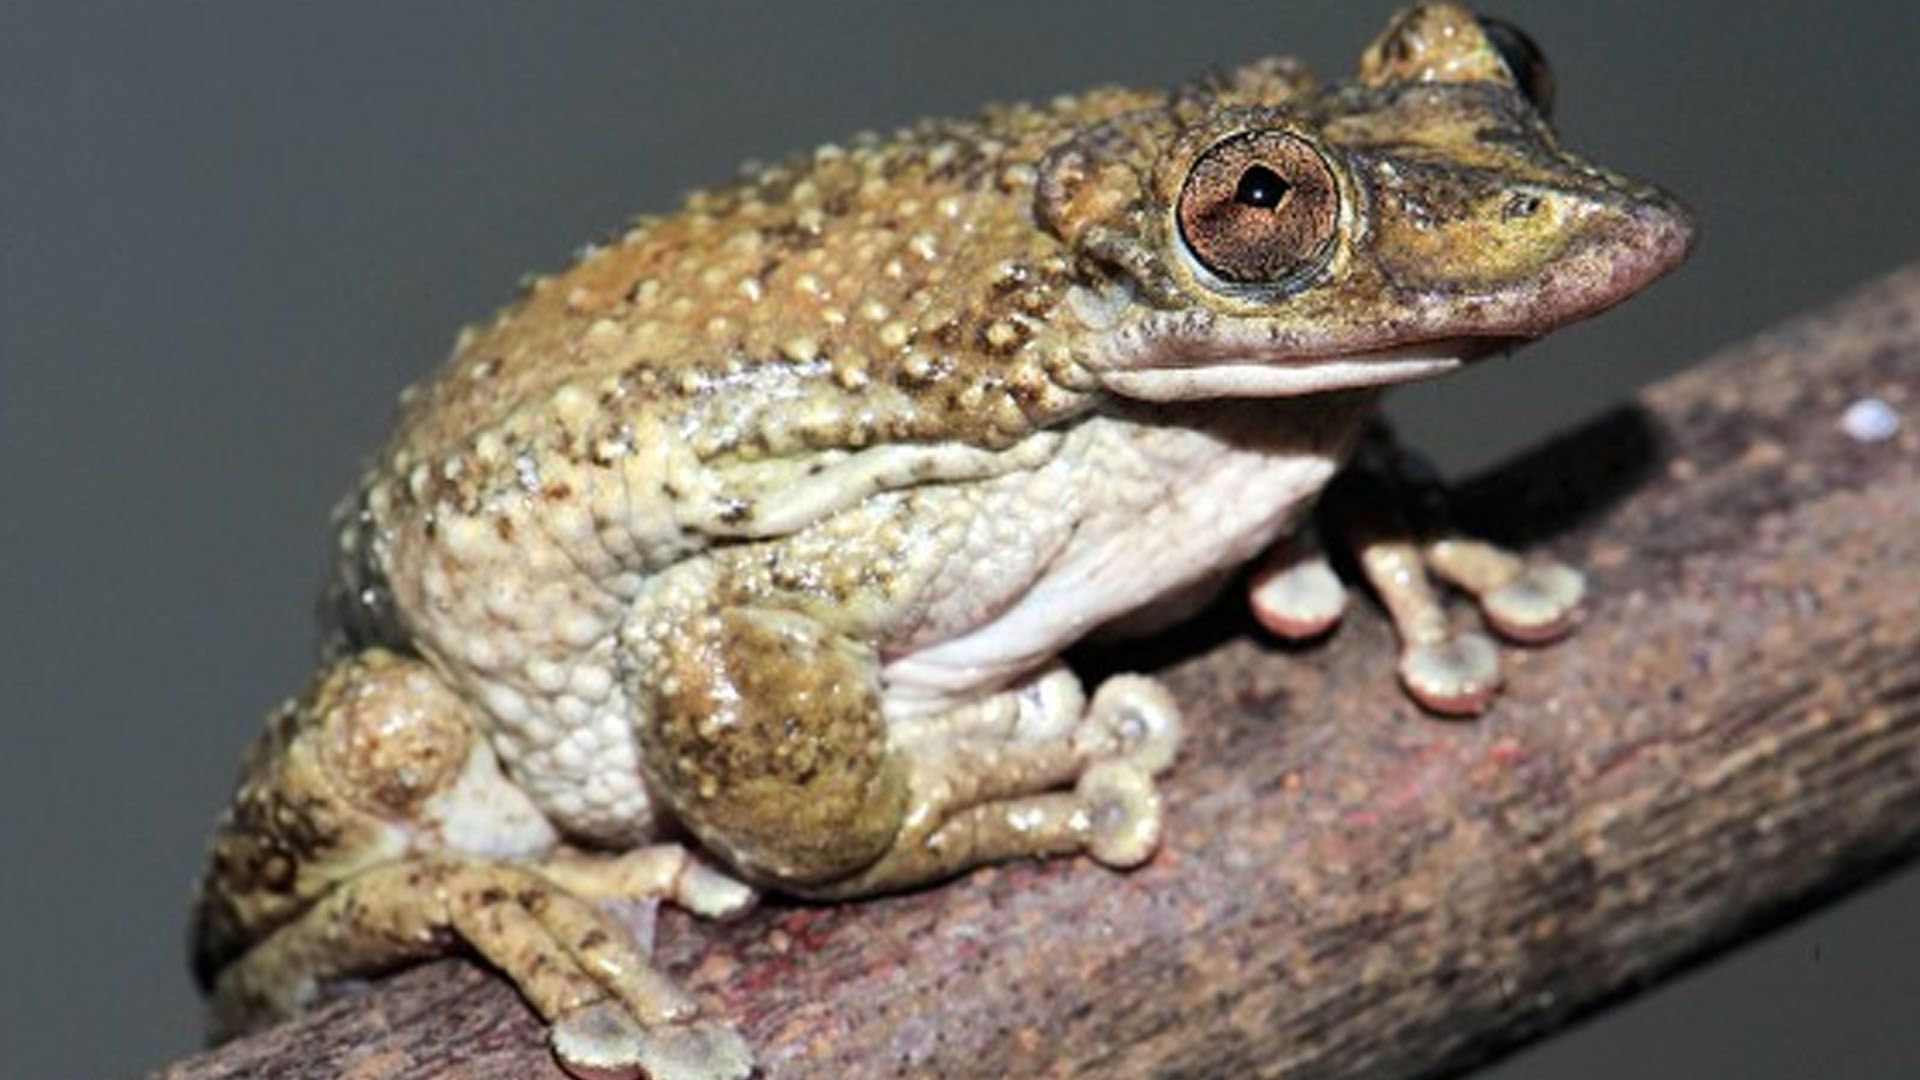 Amid agony, scientists discover world's first venomous frog